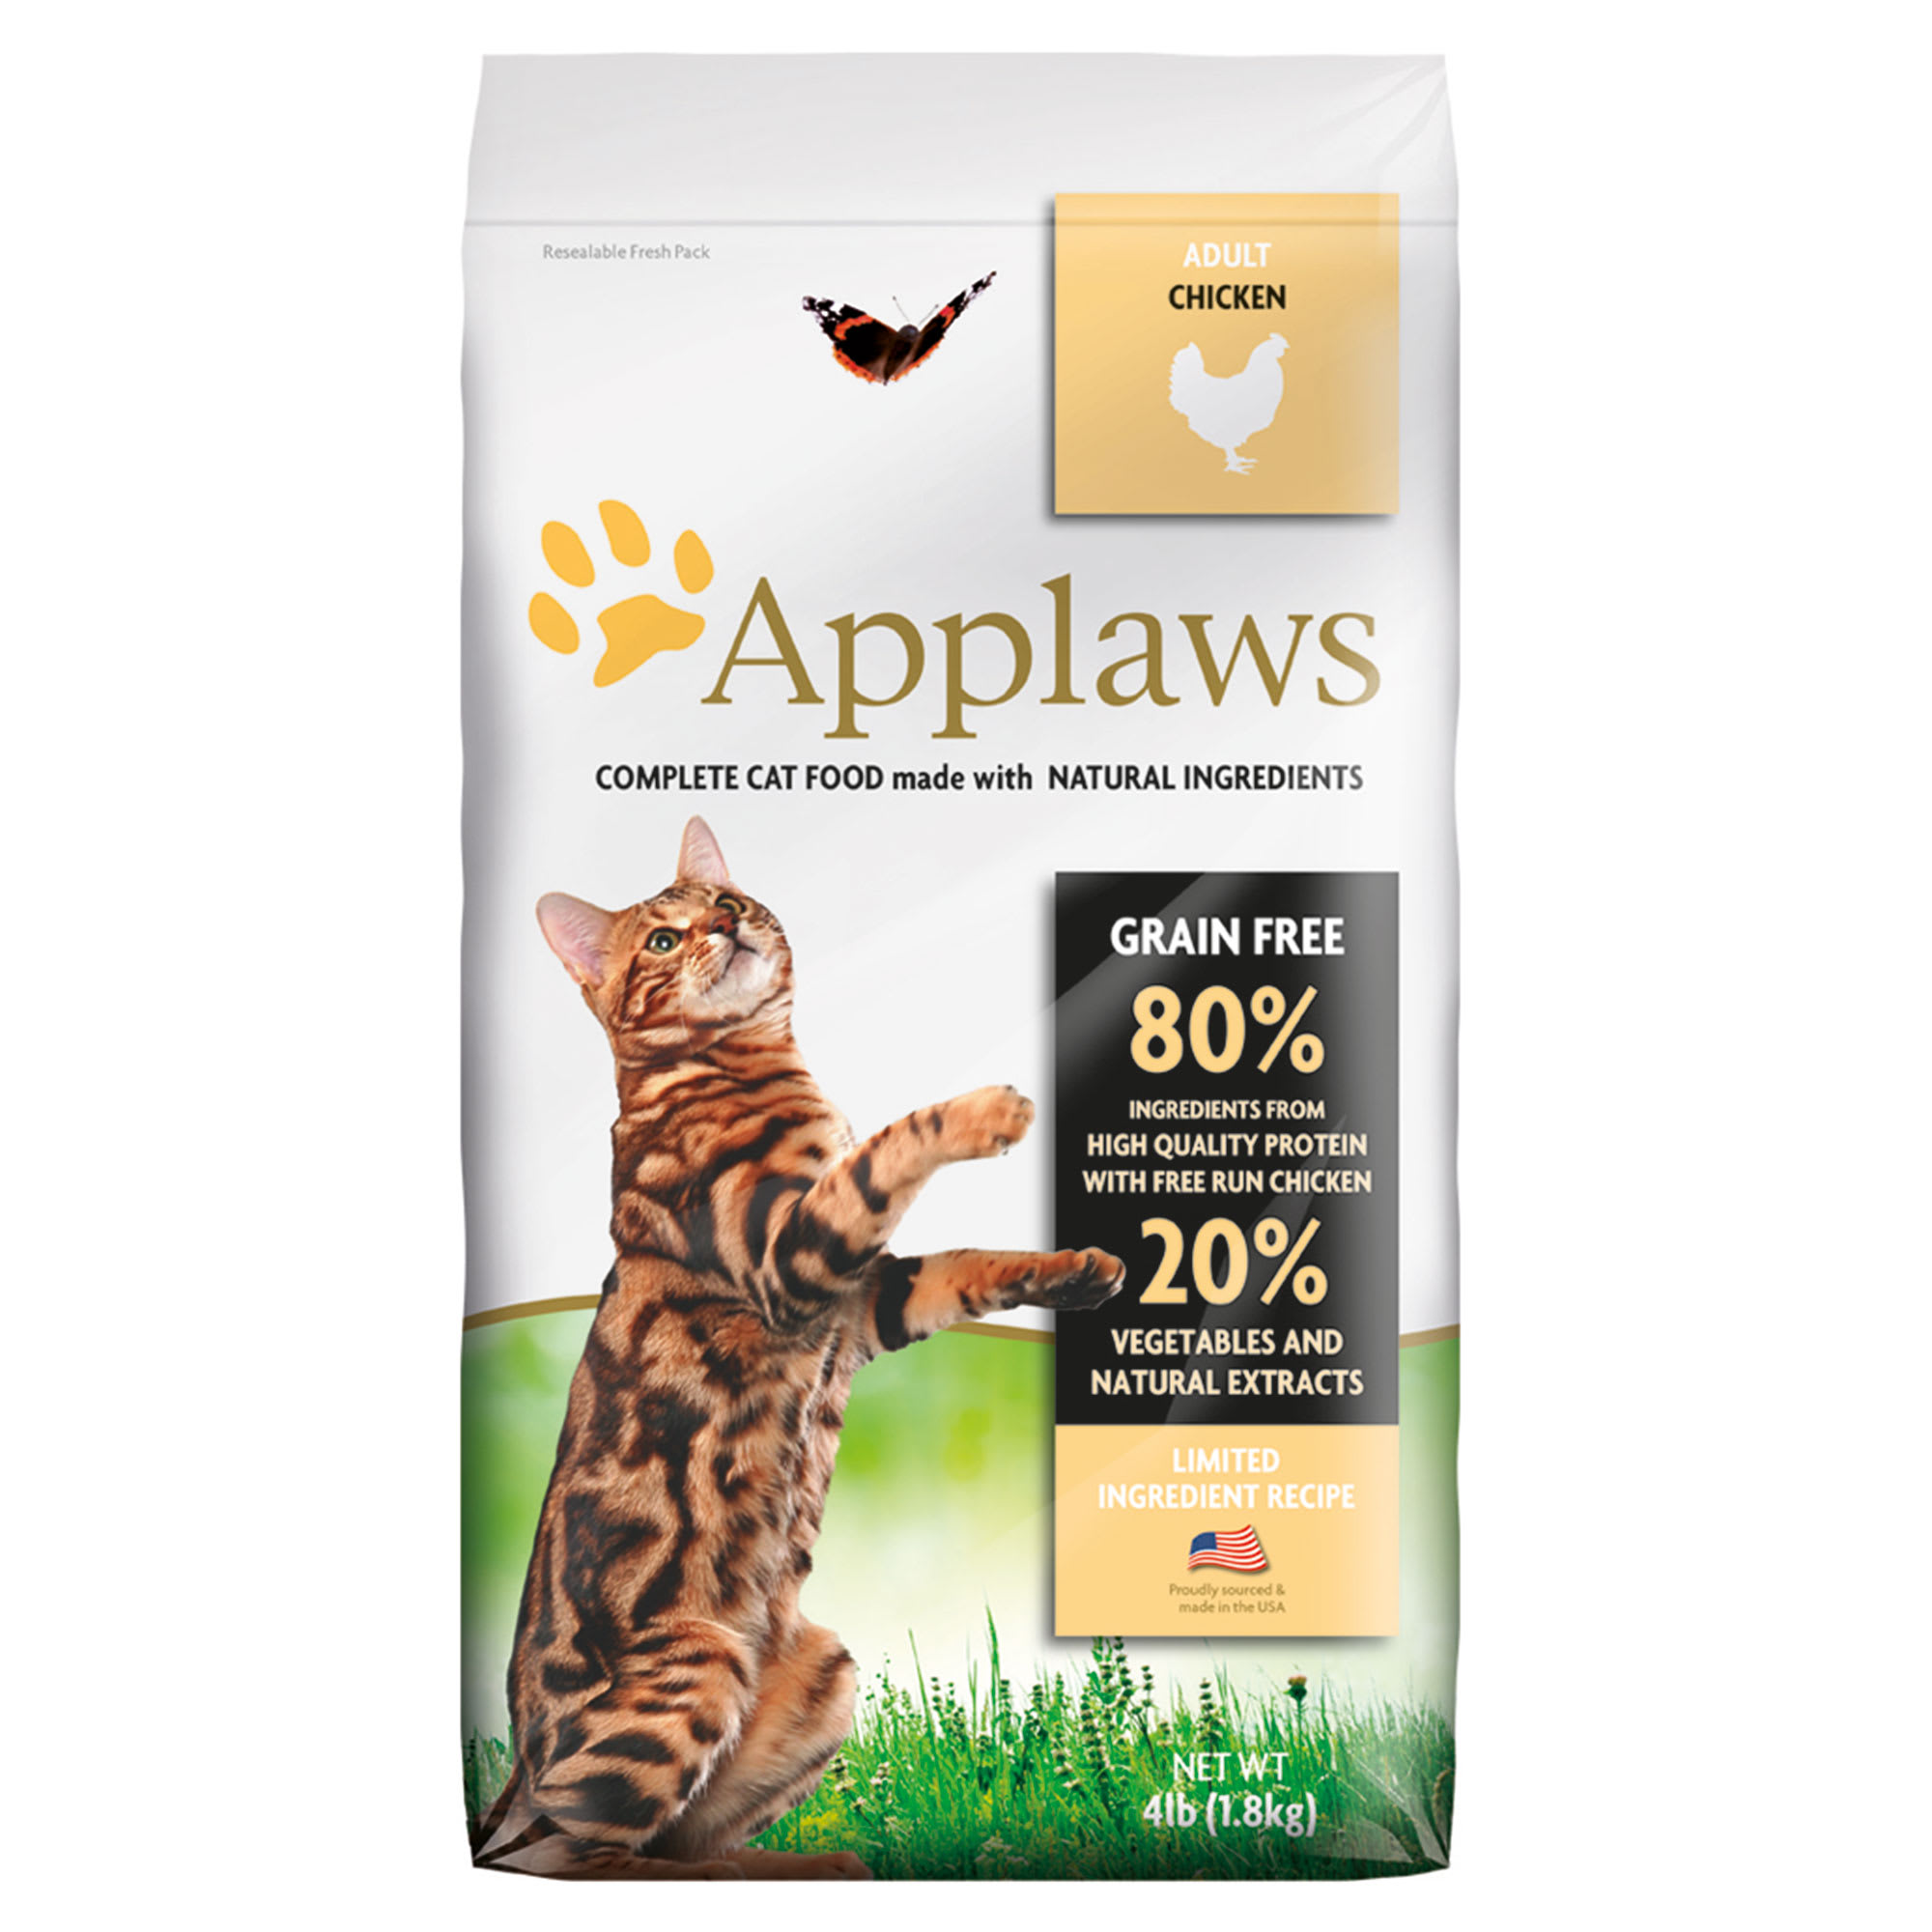 Applaws Chicken Grain Free Dry Cat Food 4 Lbs Petco